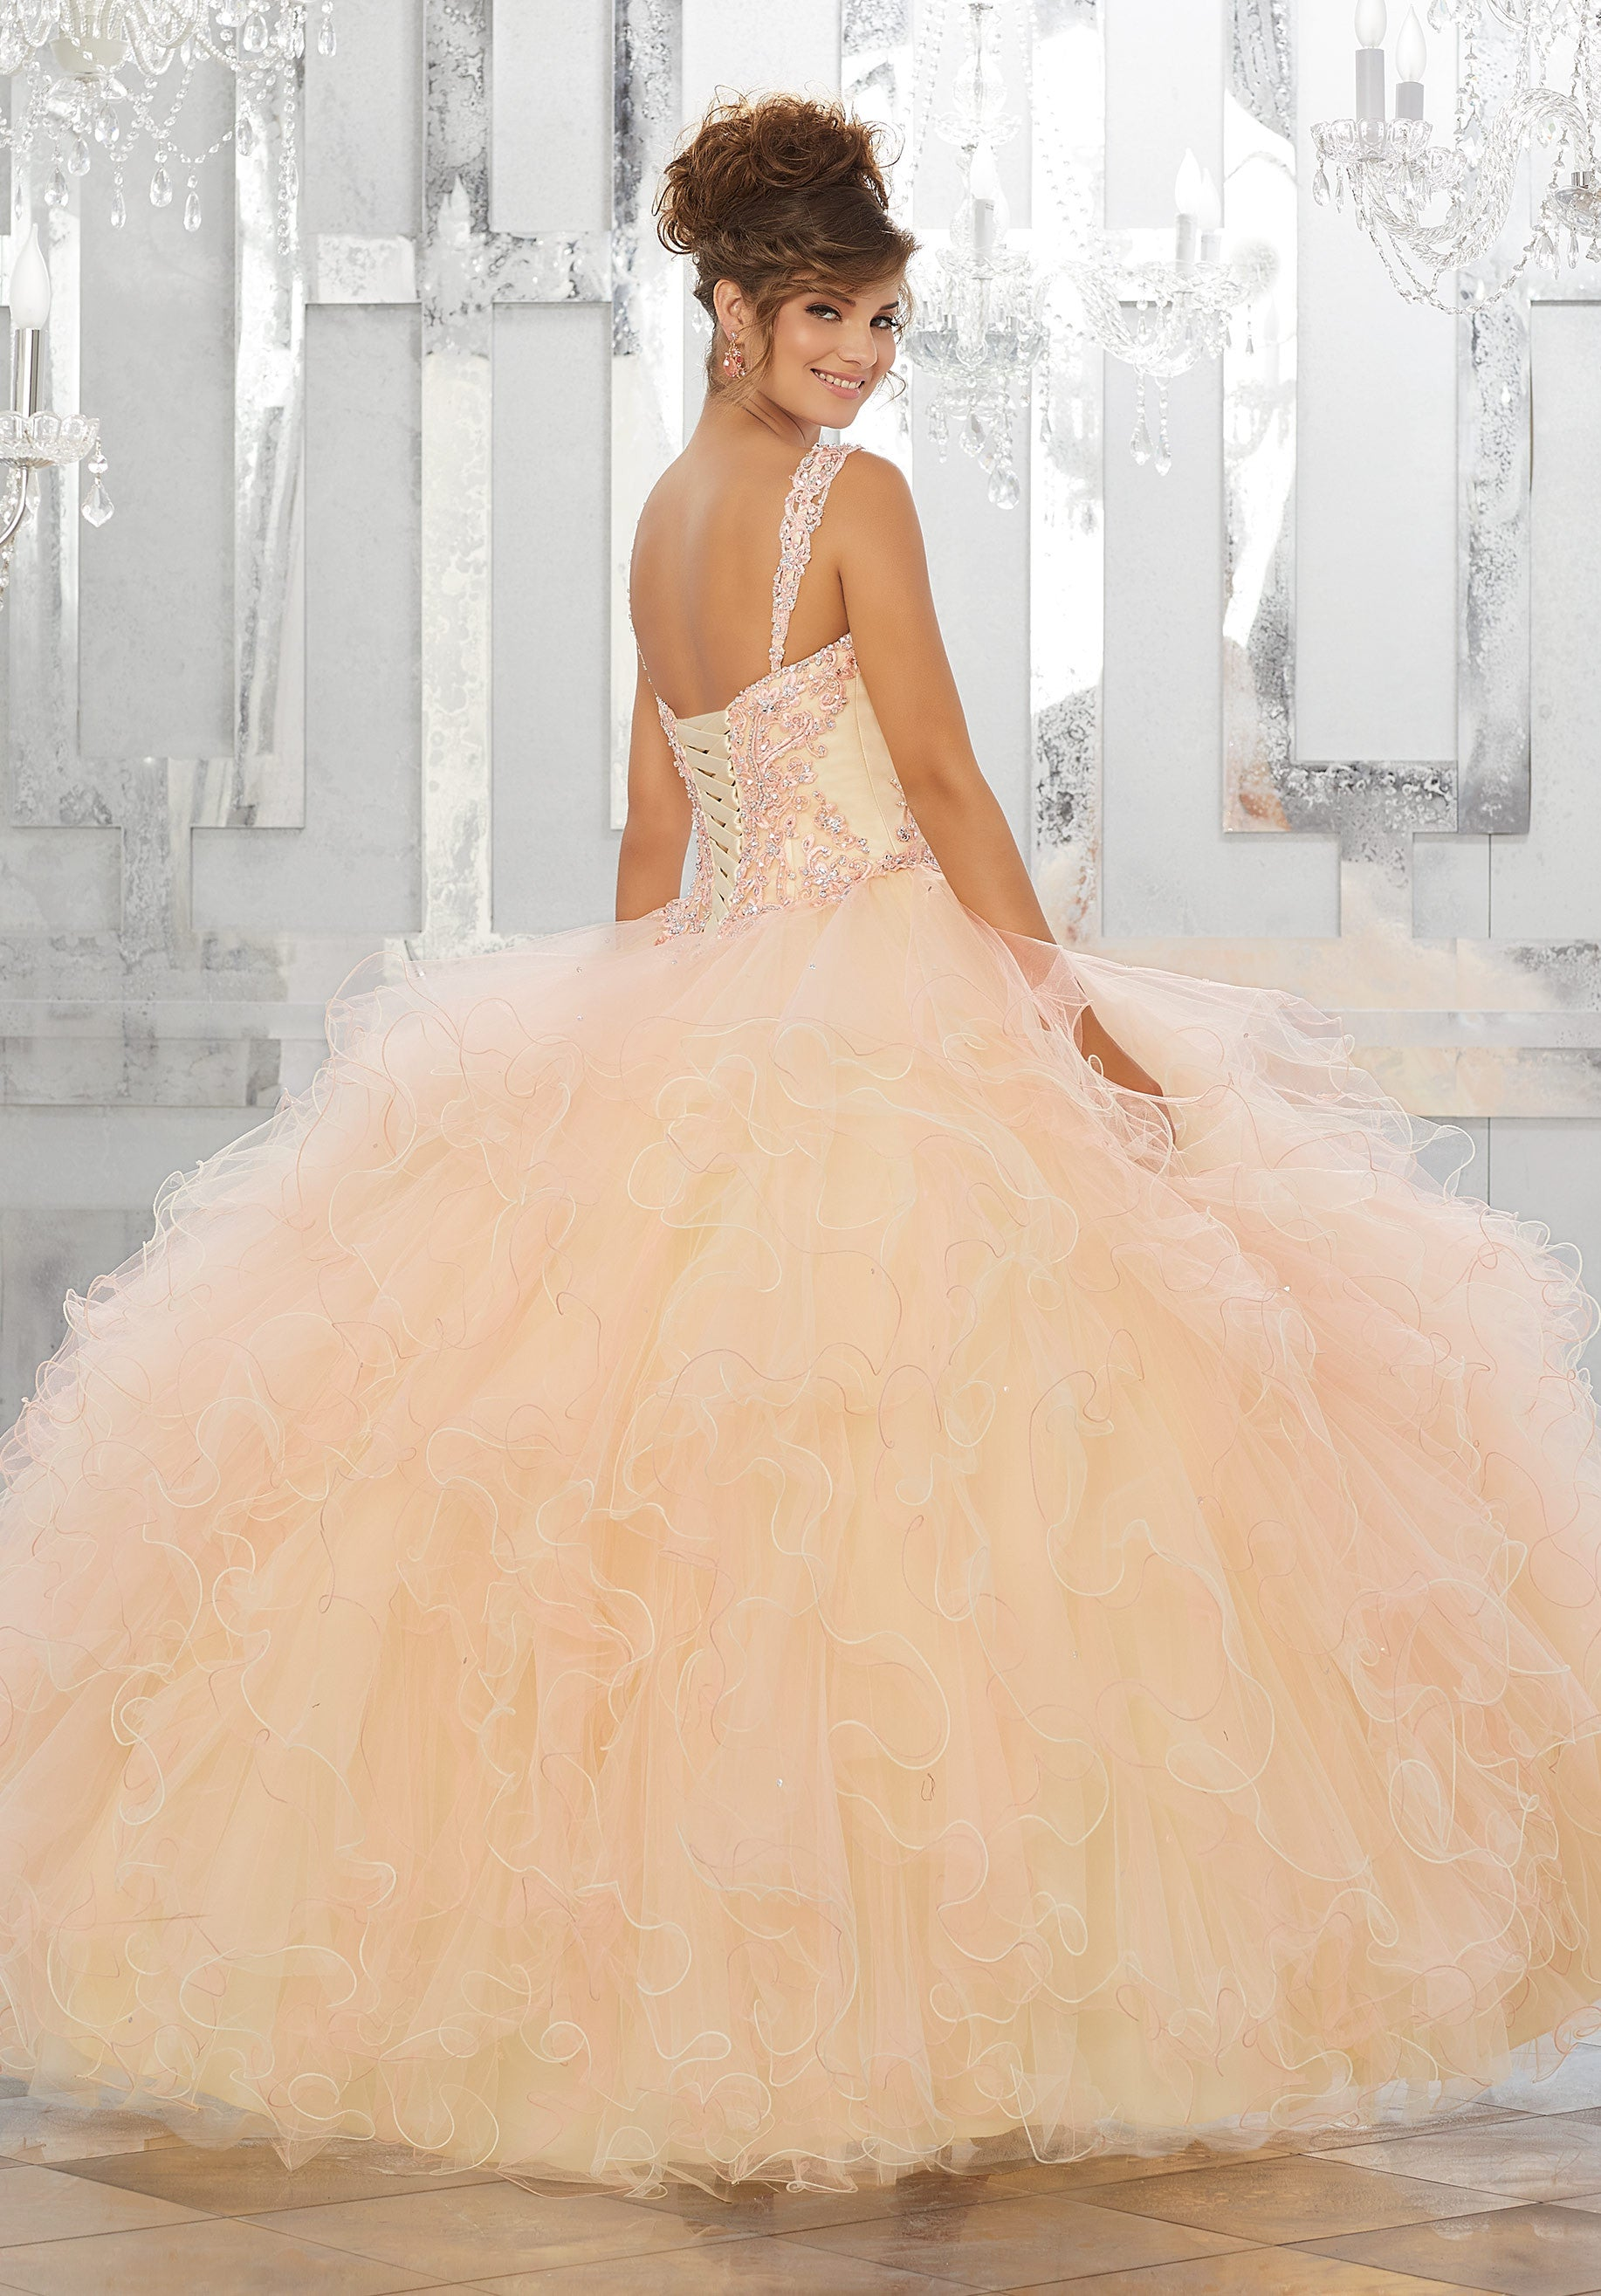 89156 Beaded and Embroidered Bodice on a Ruffled Tulle Ball Gown